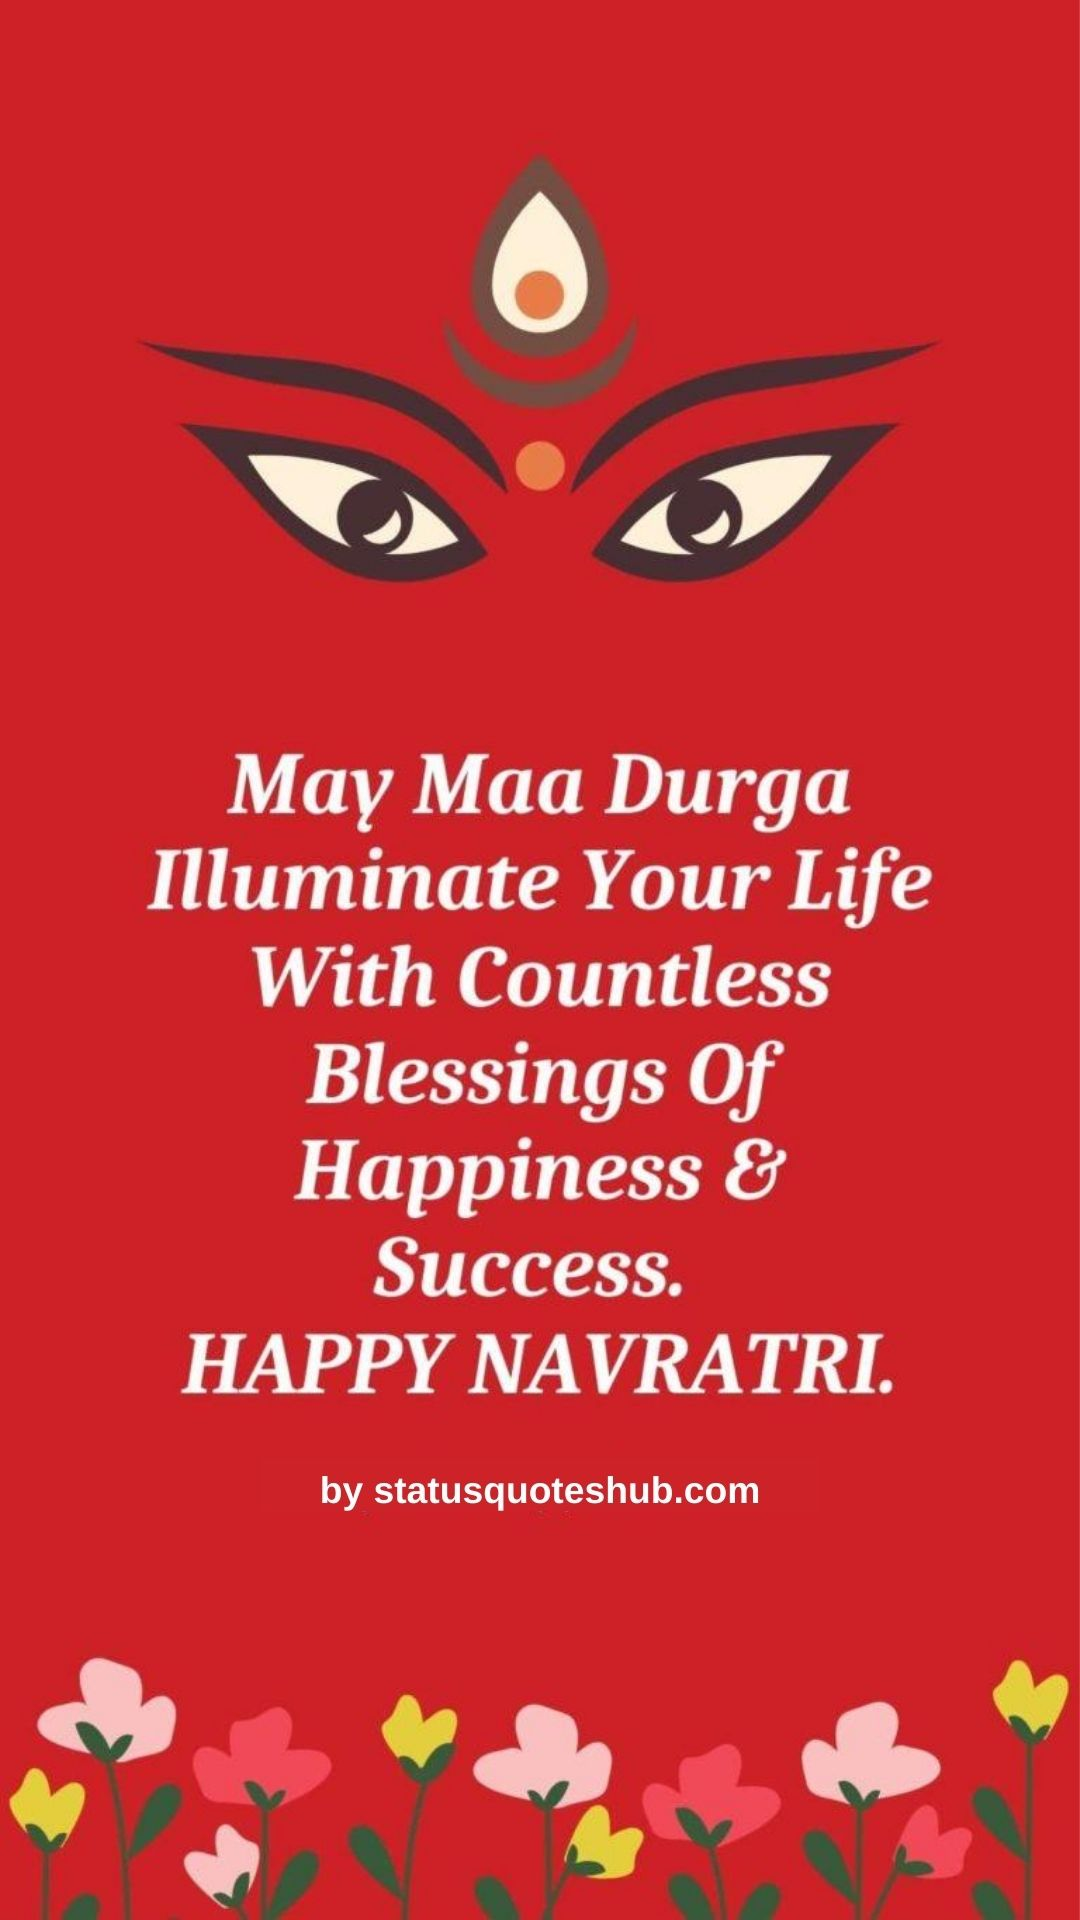 Navratri quotes and status